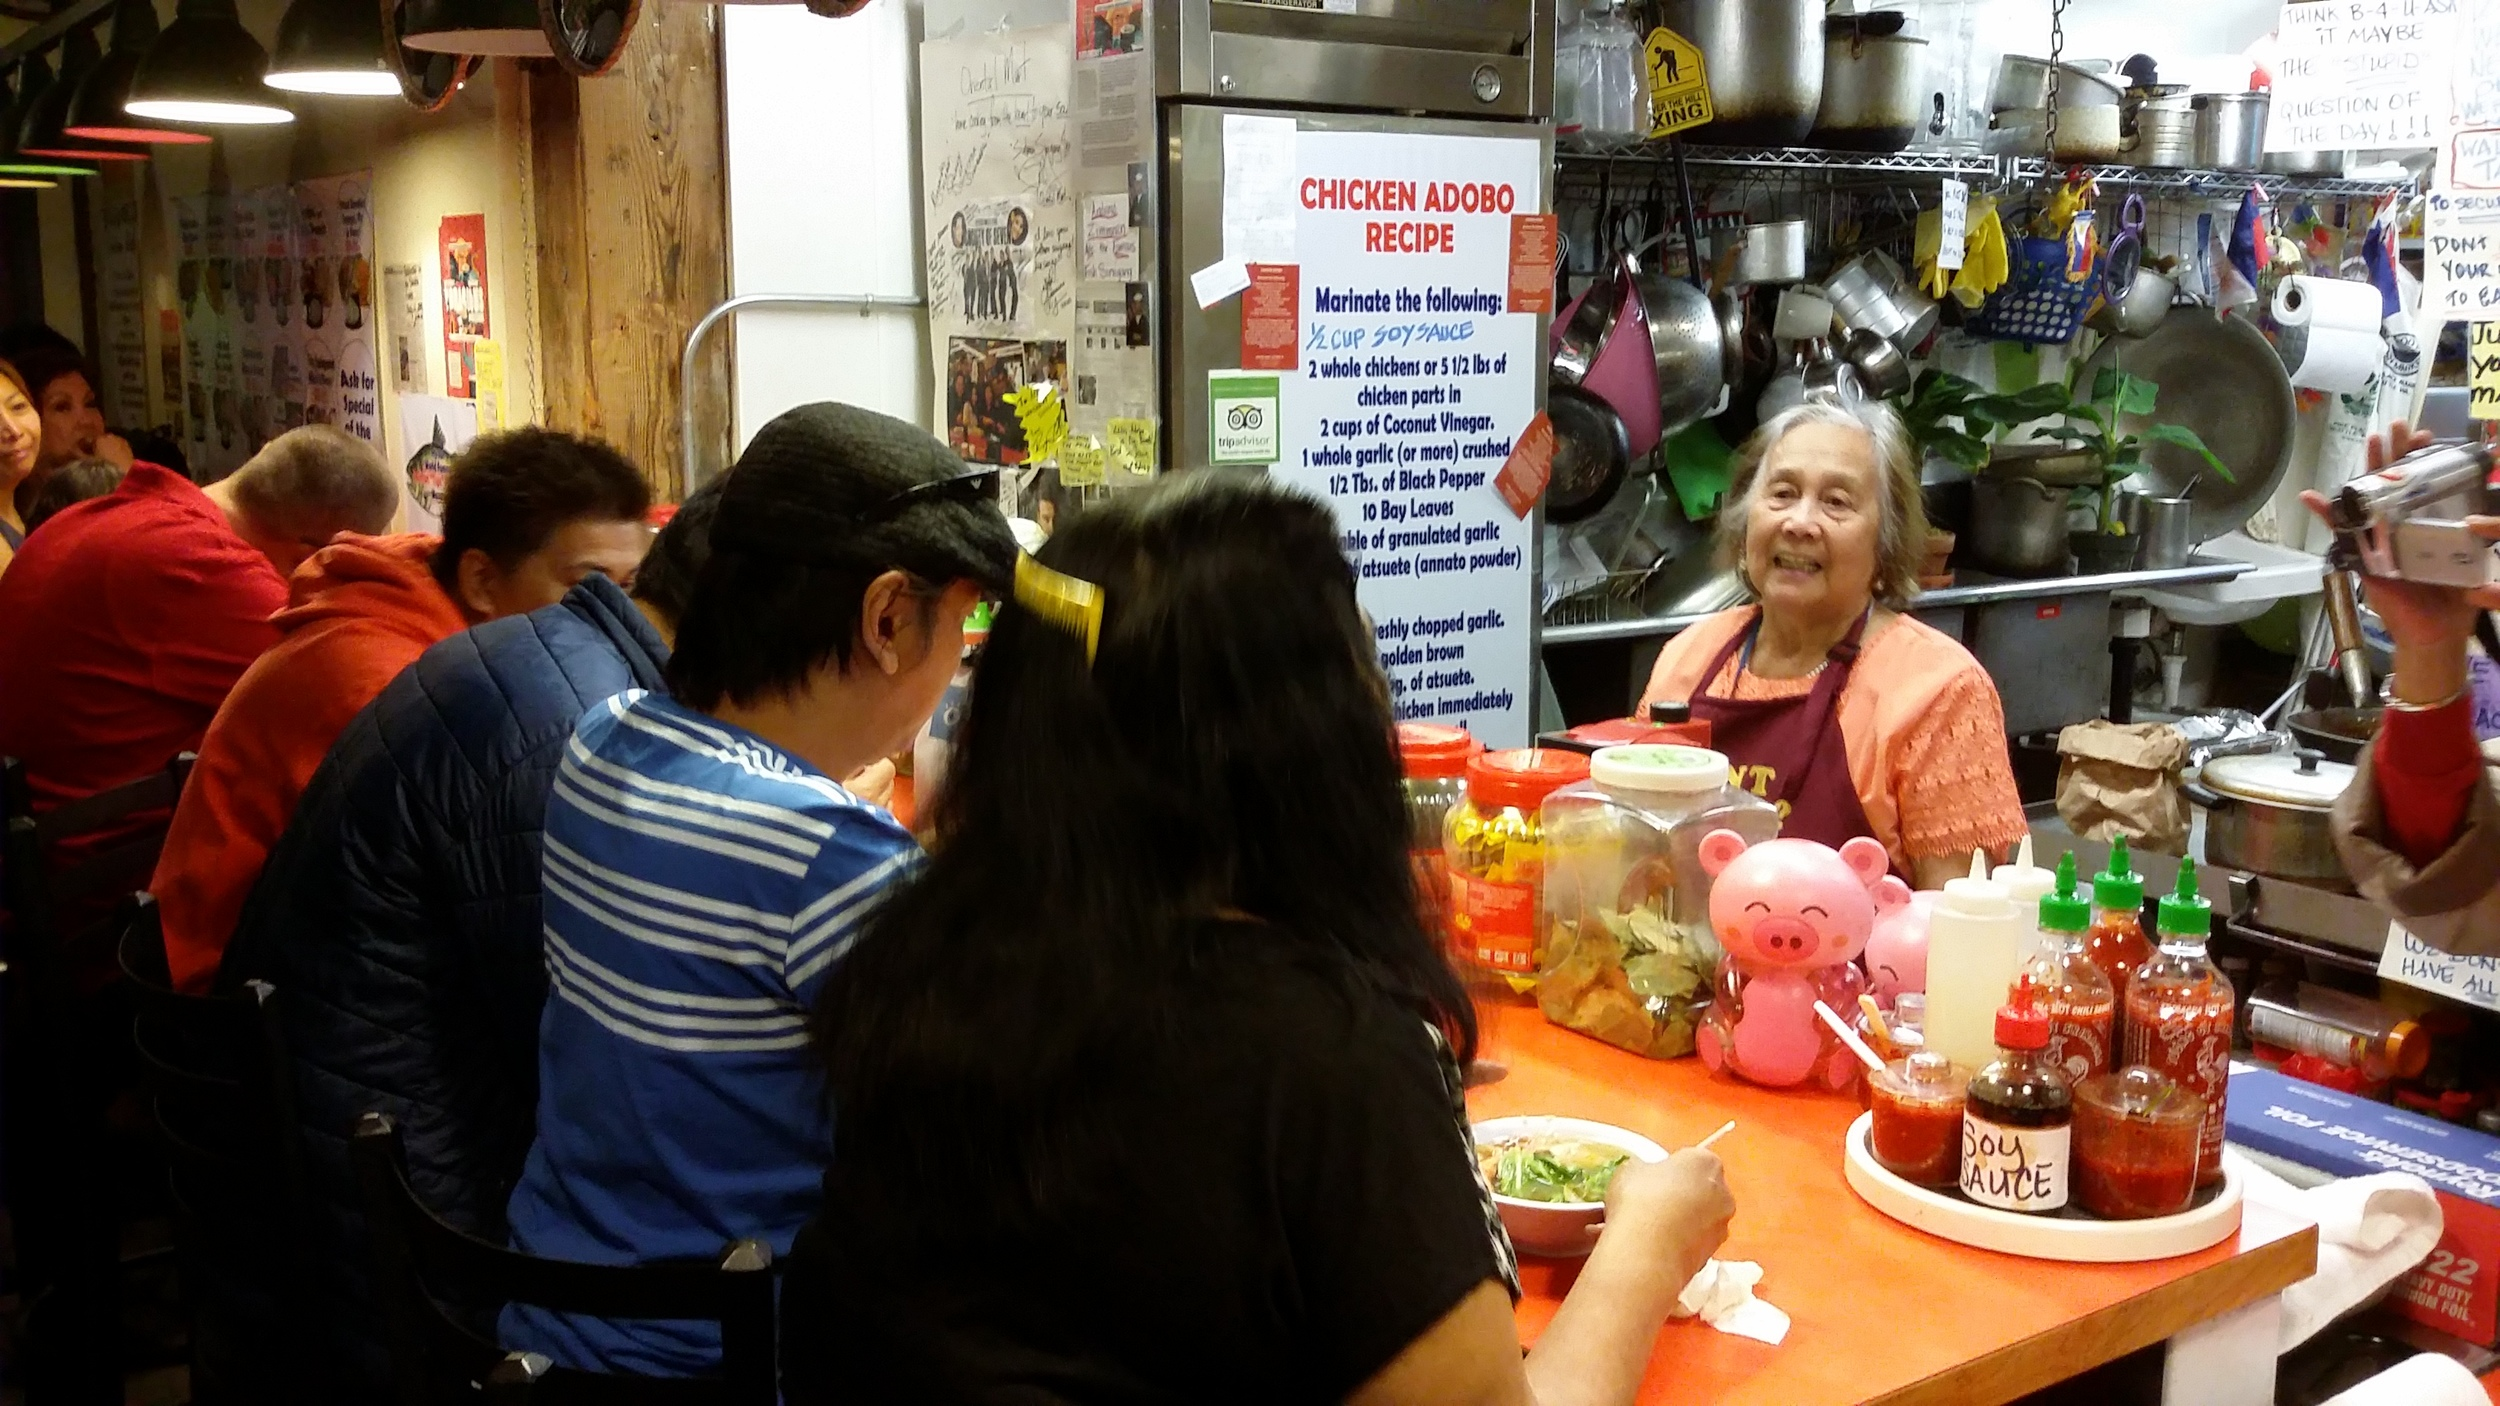 The matriarch of the Apostols, Milagros Guacen Apostol, makes sure Oriental Mart's customers eat well. (Photo by Elias M. Ferrer)